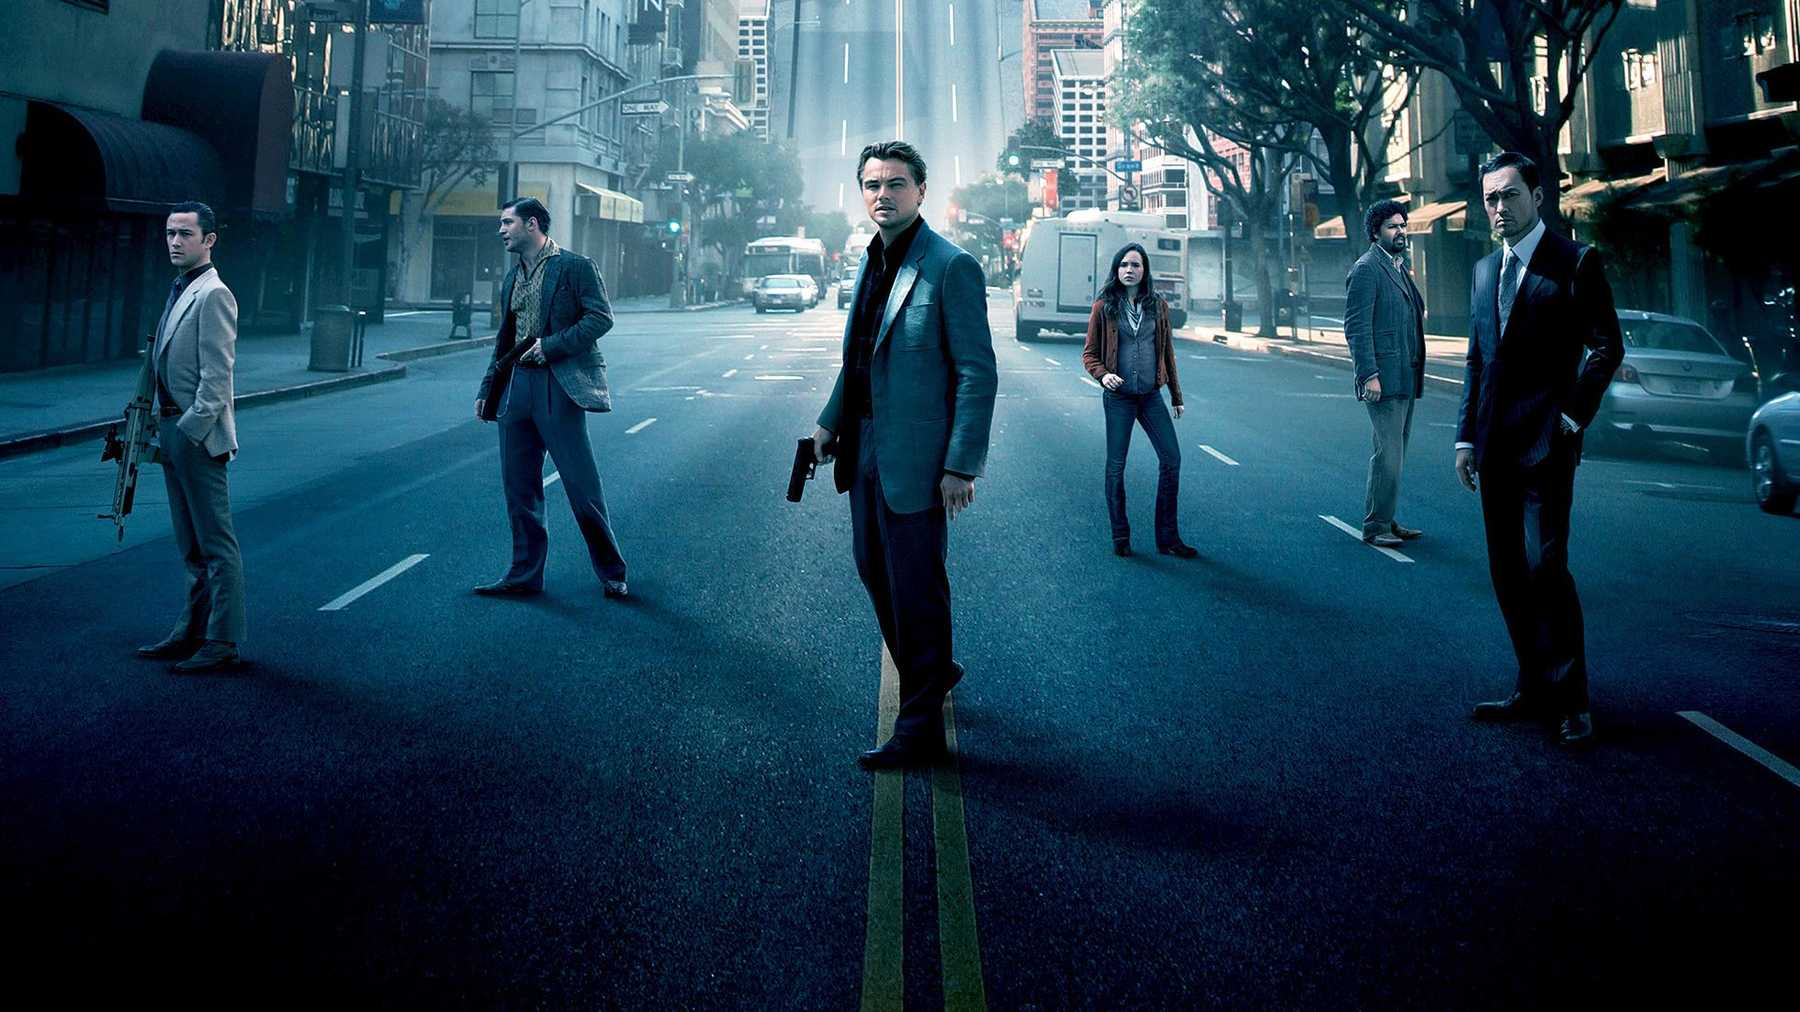 Inception - Best Movies To Watch At Home While Quarantined